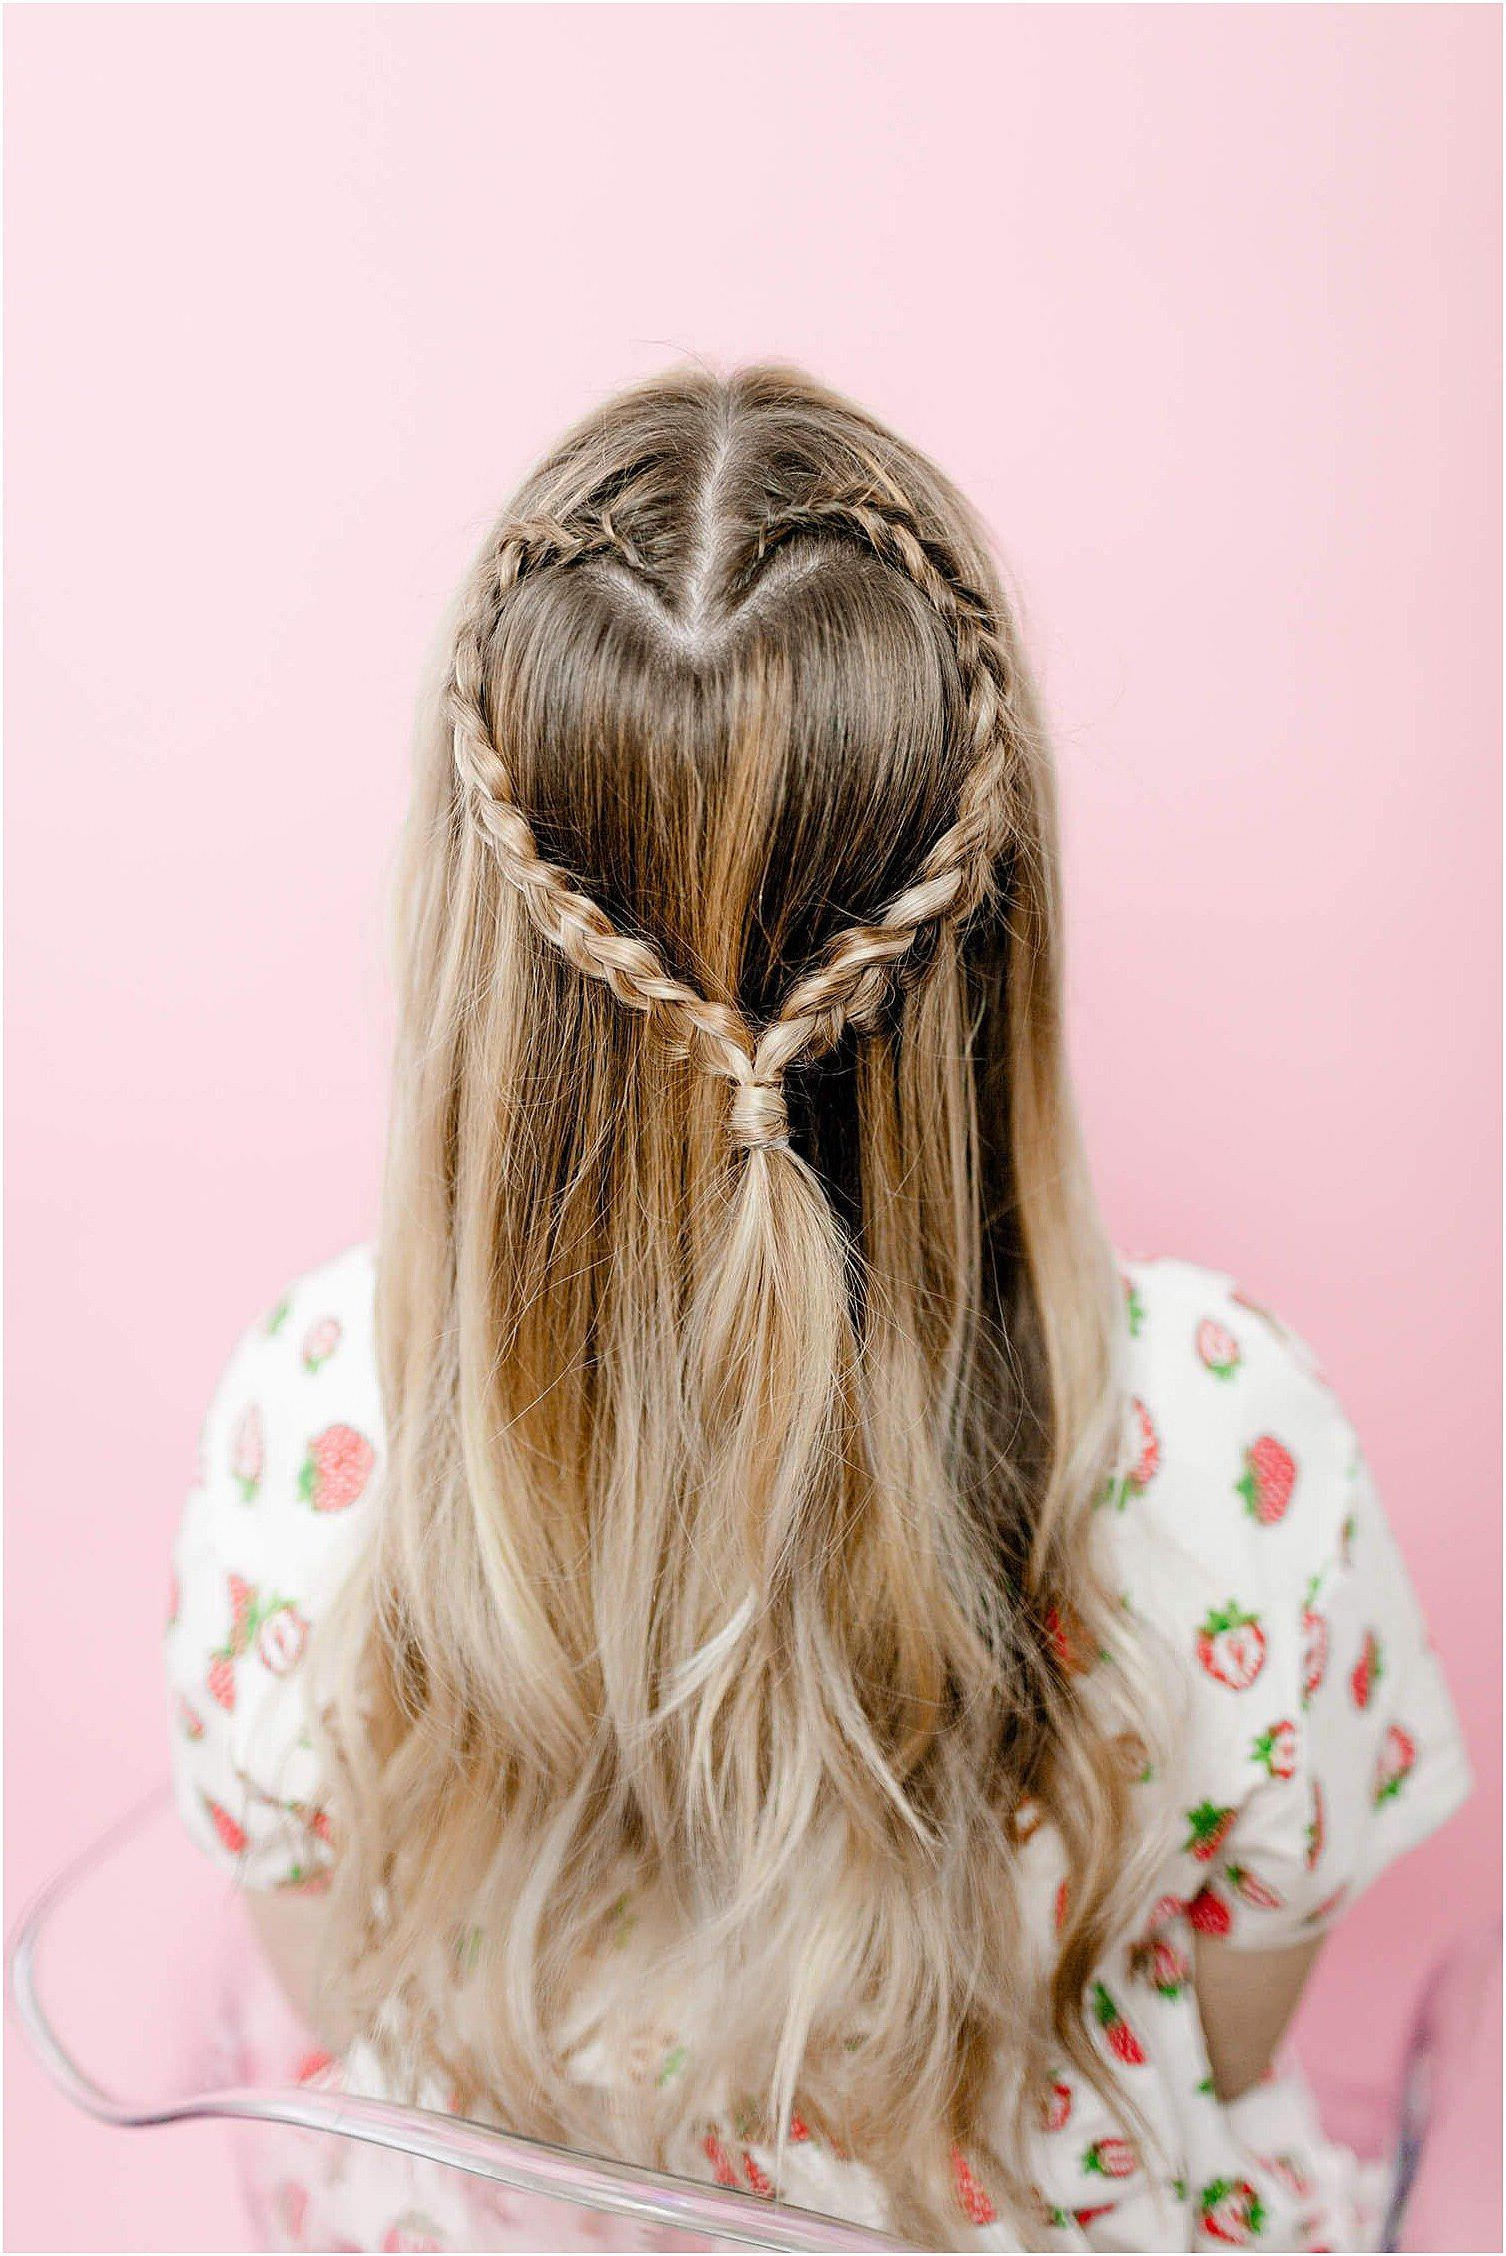 61 Beautiful Braids And Braided Hairstyles – The Women's Trend With Current Billowing Ponytail Braided Hairstyles (View 1 of 20)